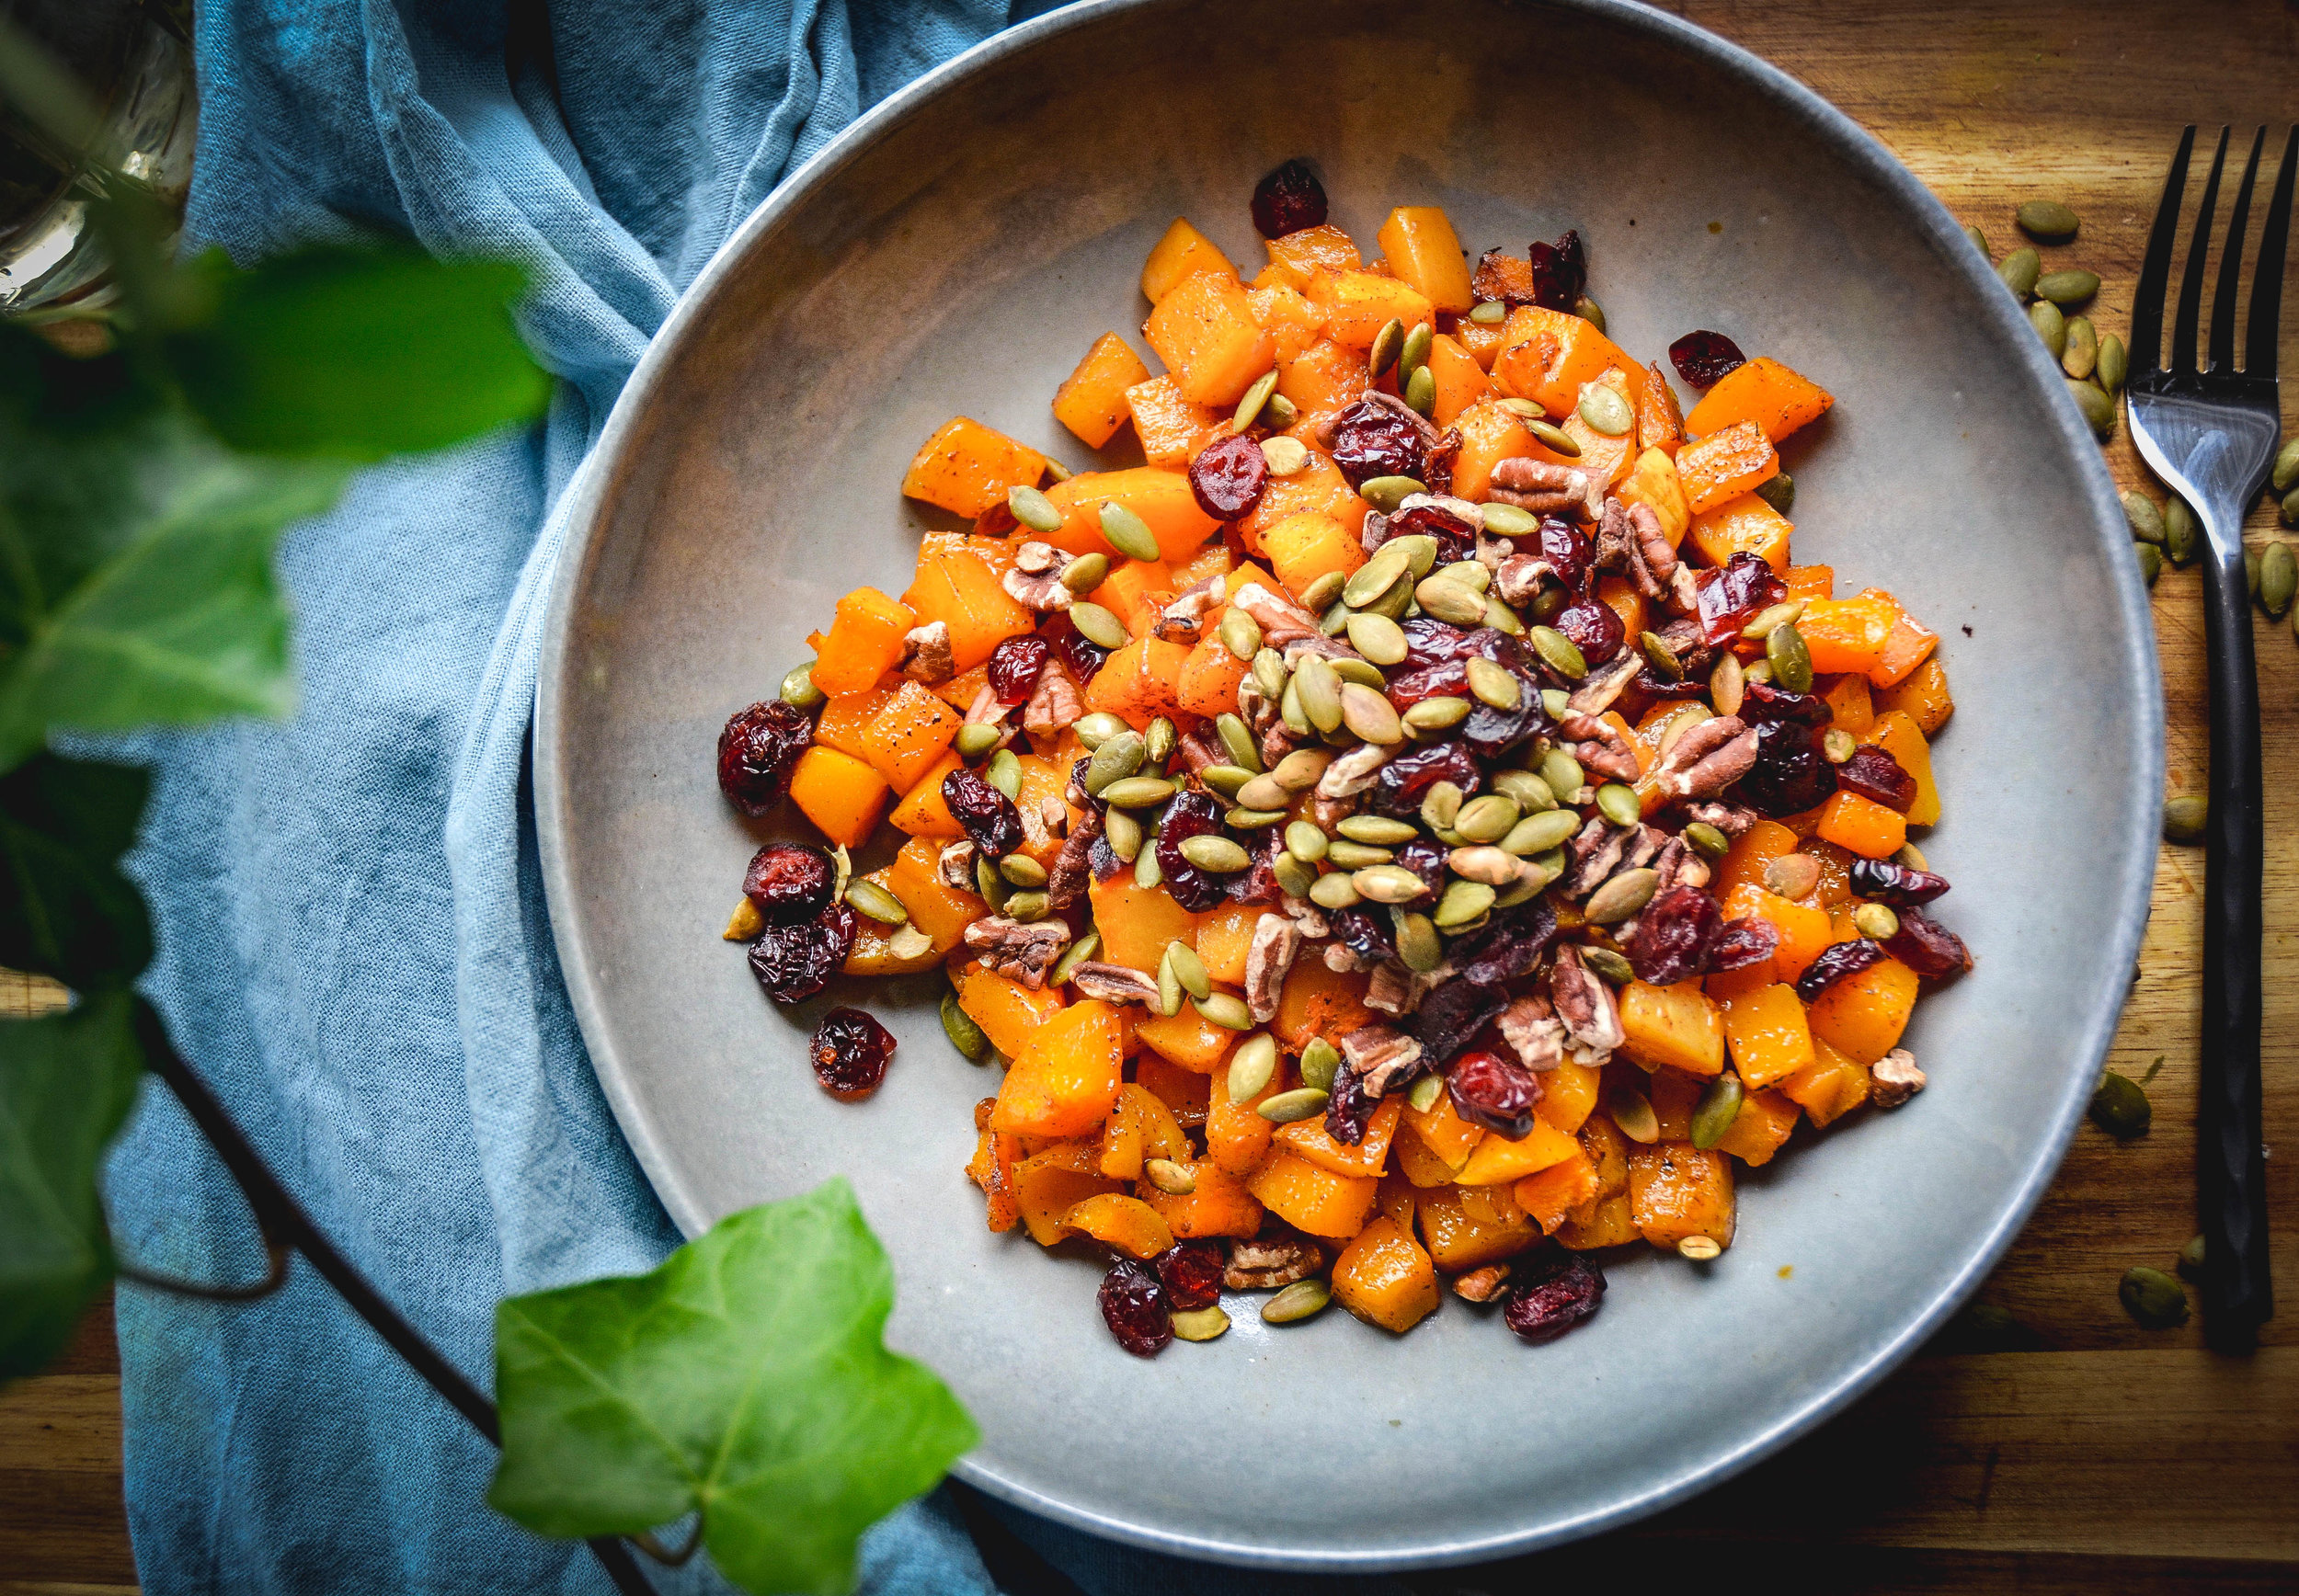 Cinnamon Roasted Butternut Squash with Cranberries